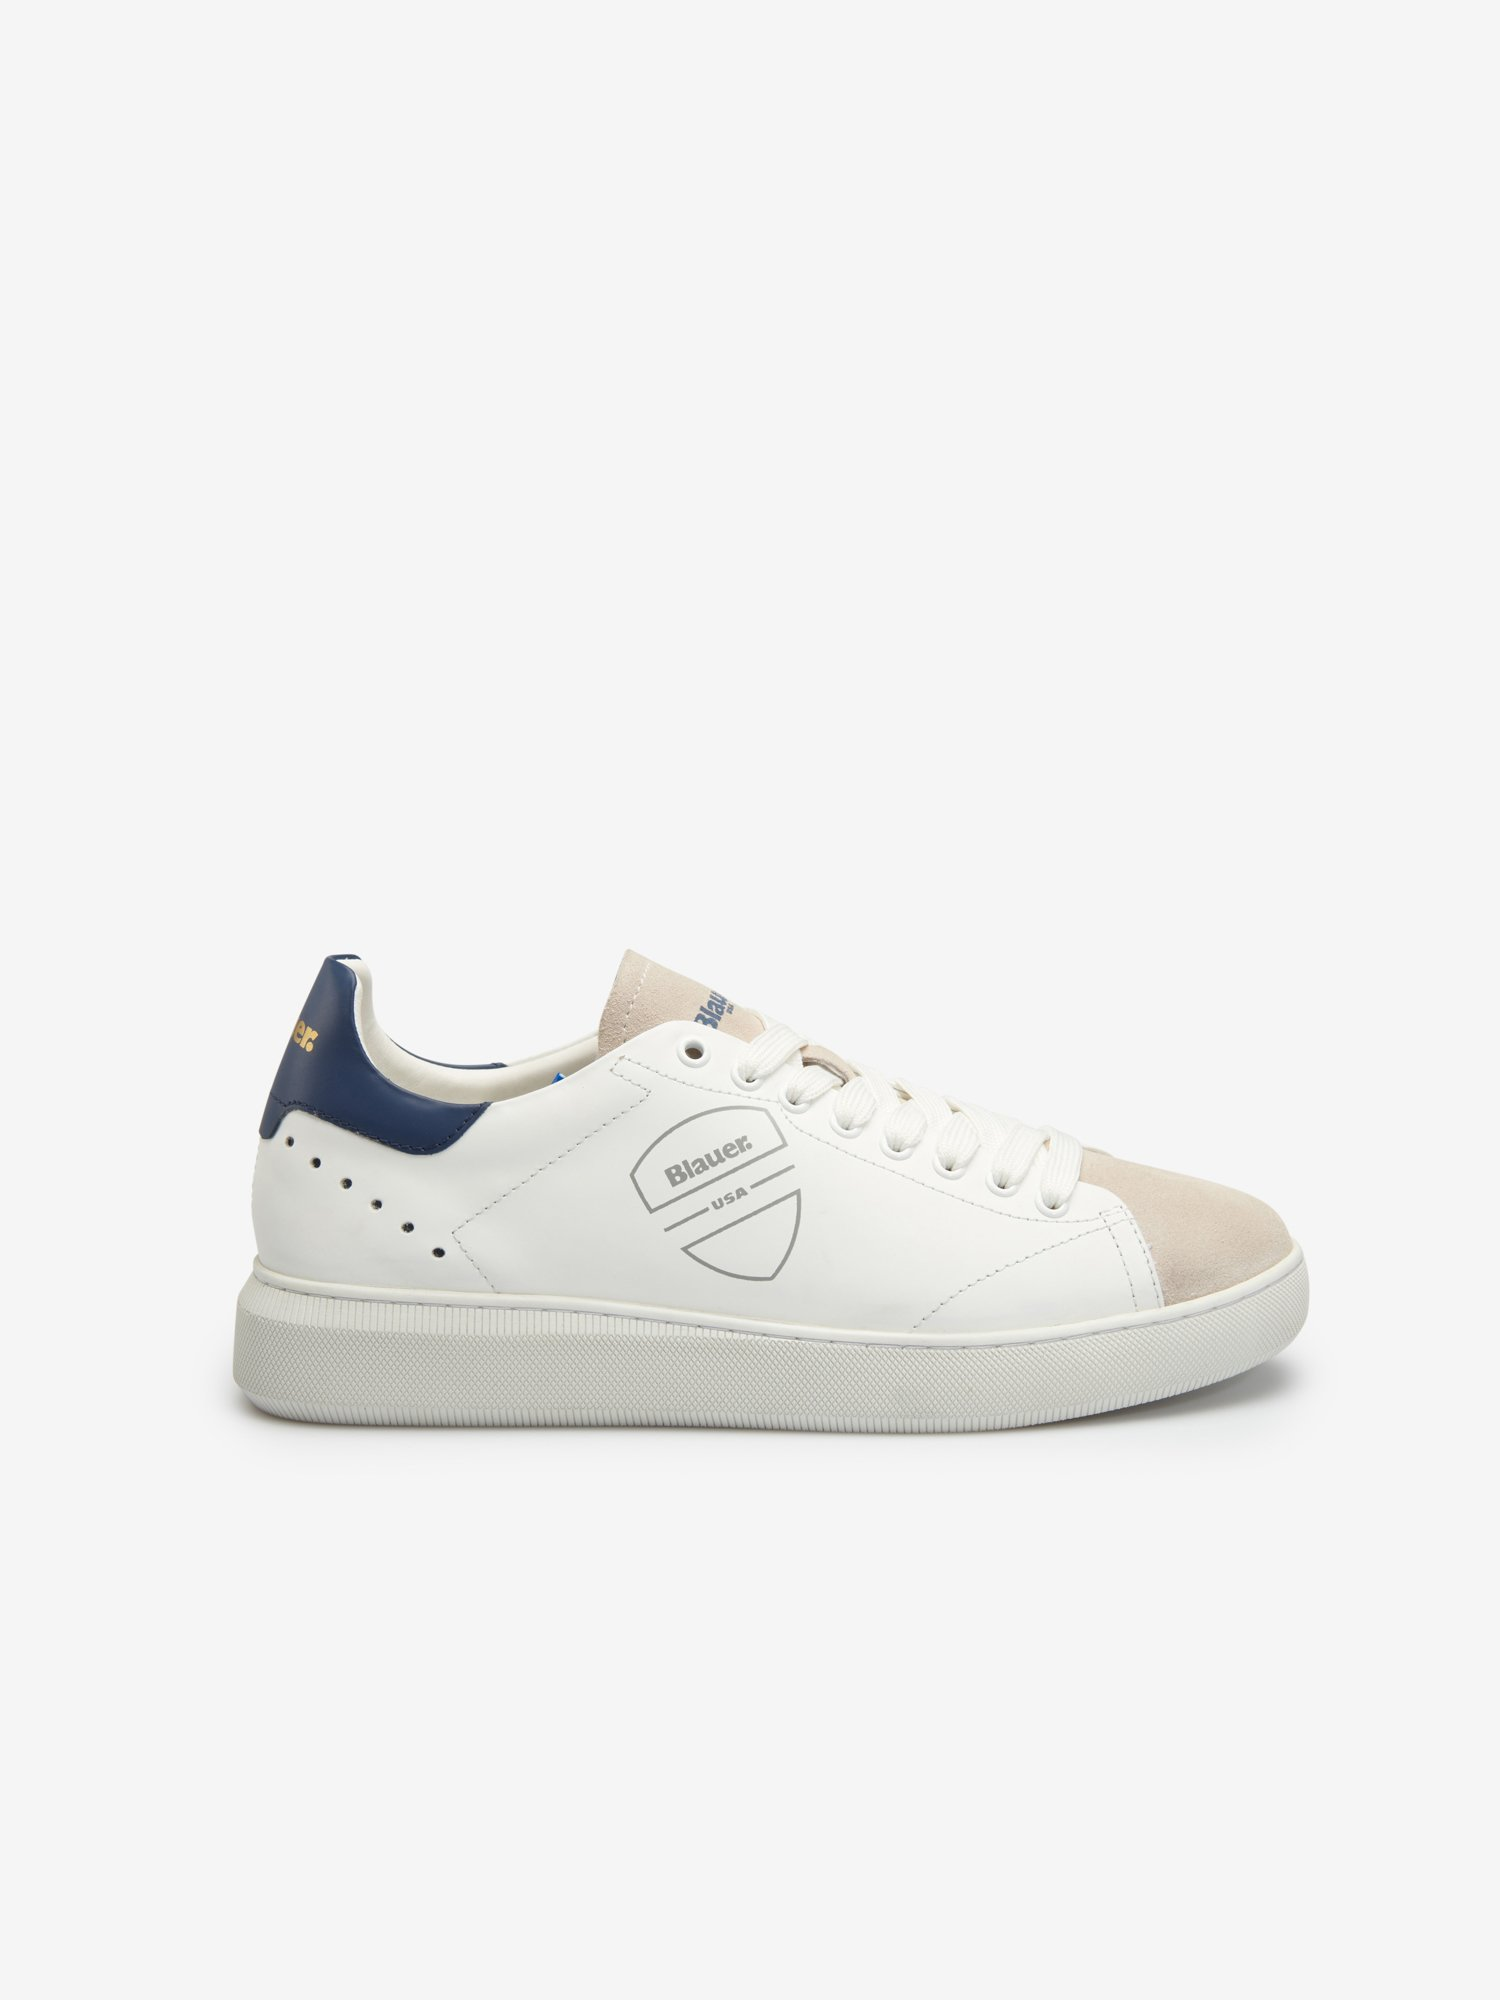 Blauer - Keith Leather Sneakers - Blu Ionio - Blauer